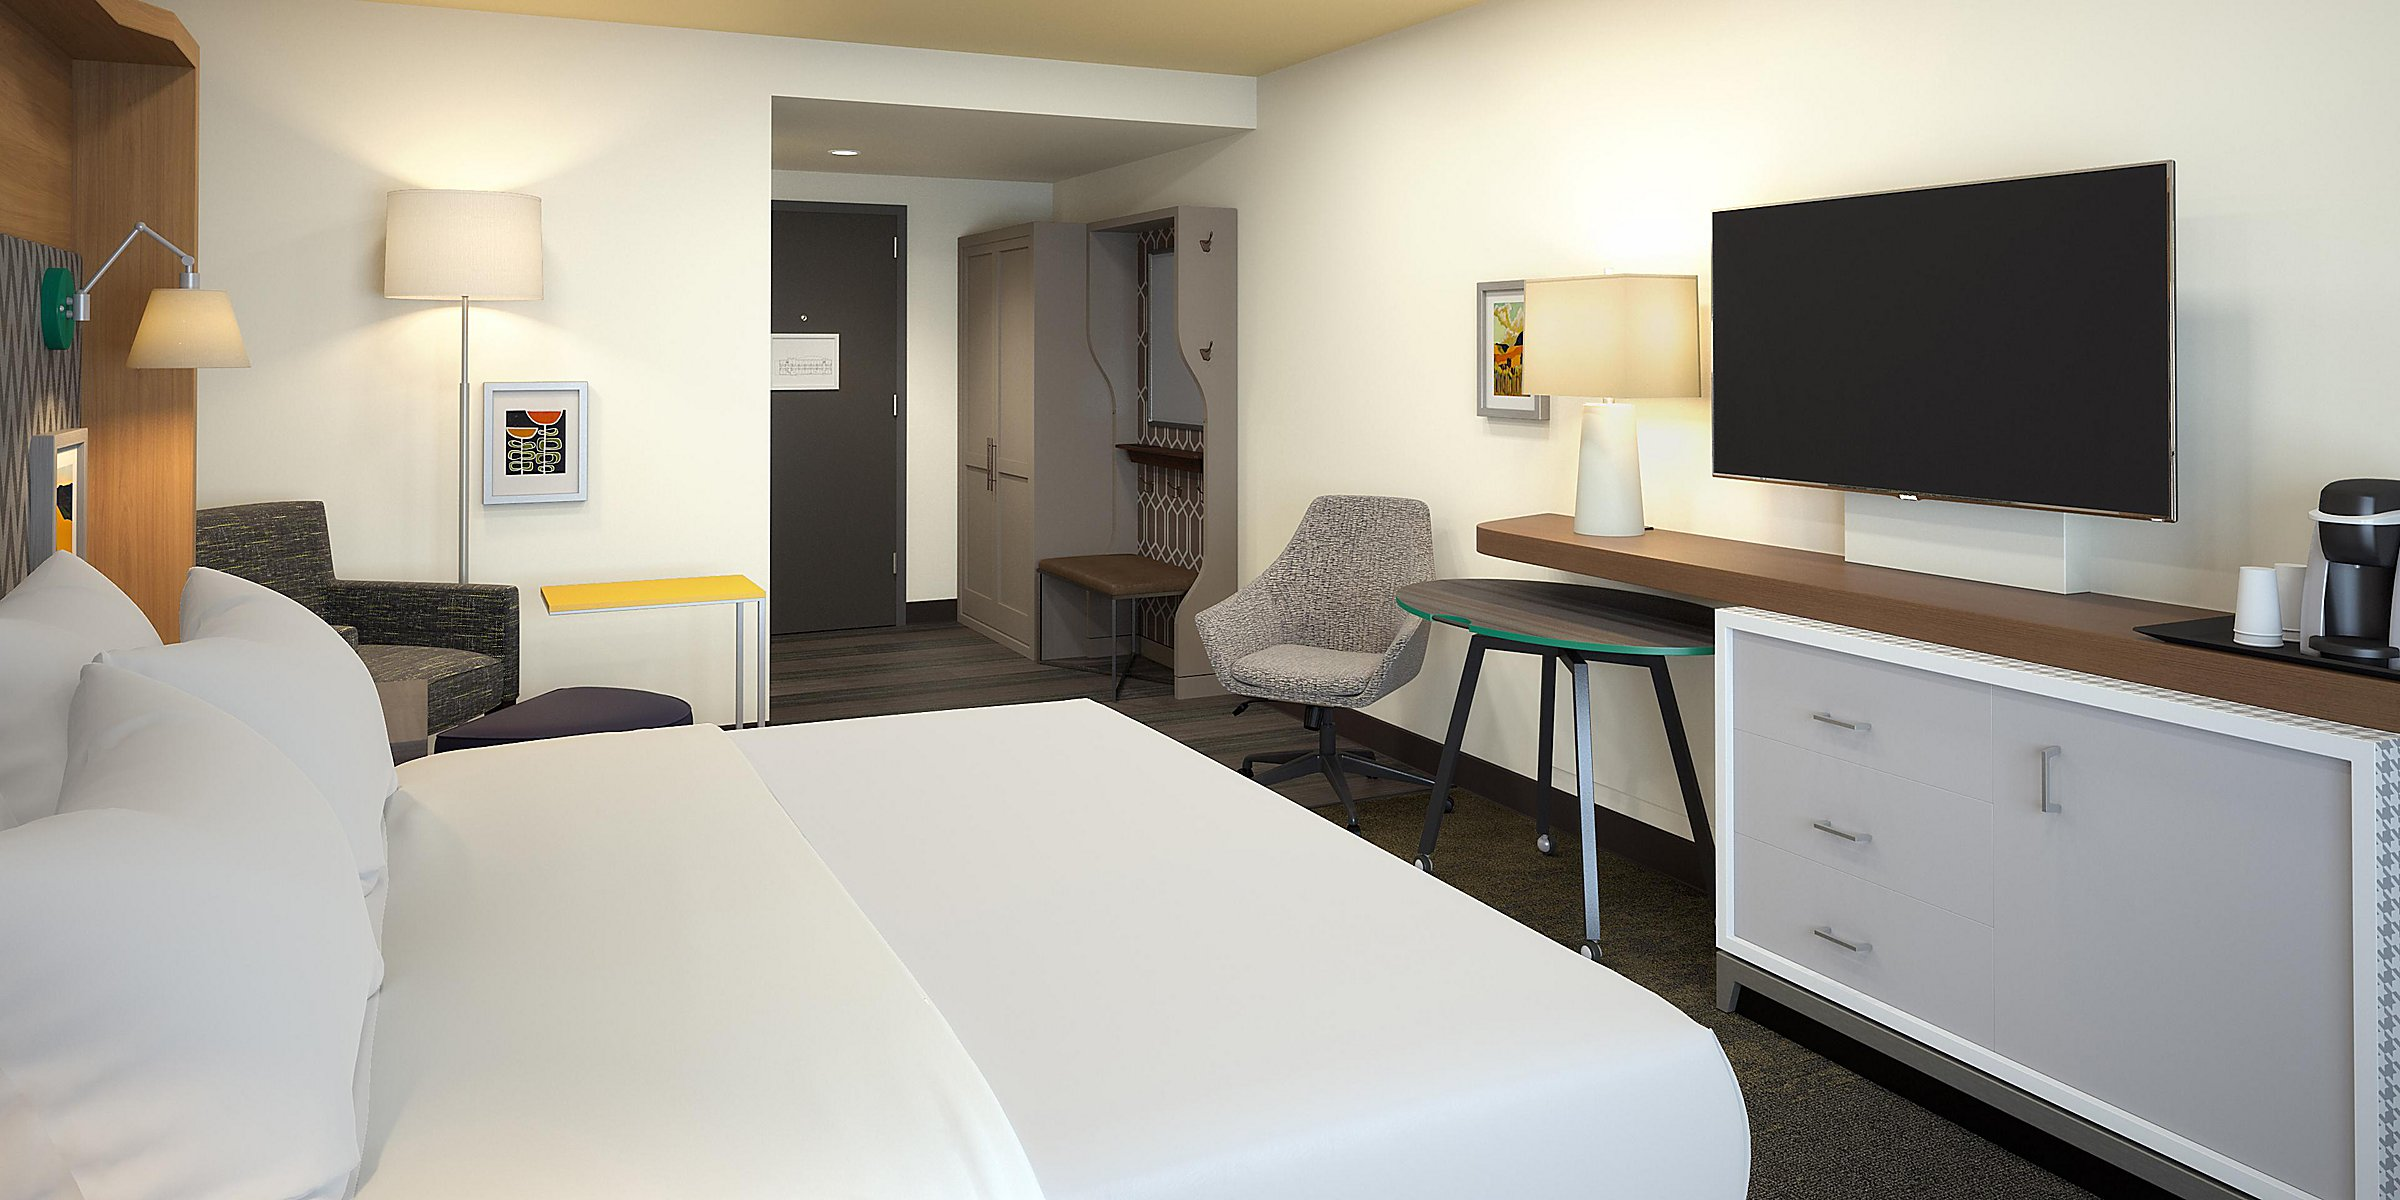 Drexel Hill Hotels in Springfield, PA | Holiday Inn & Suites